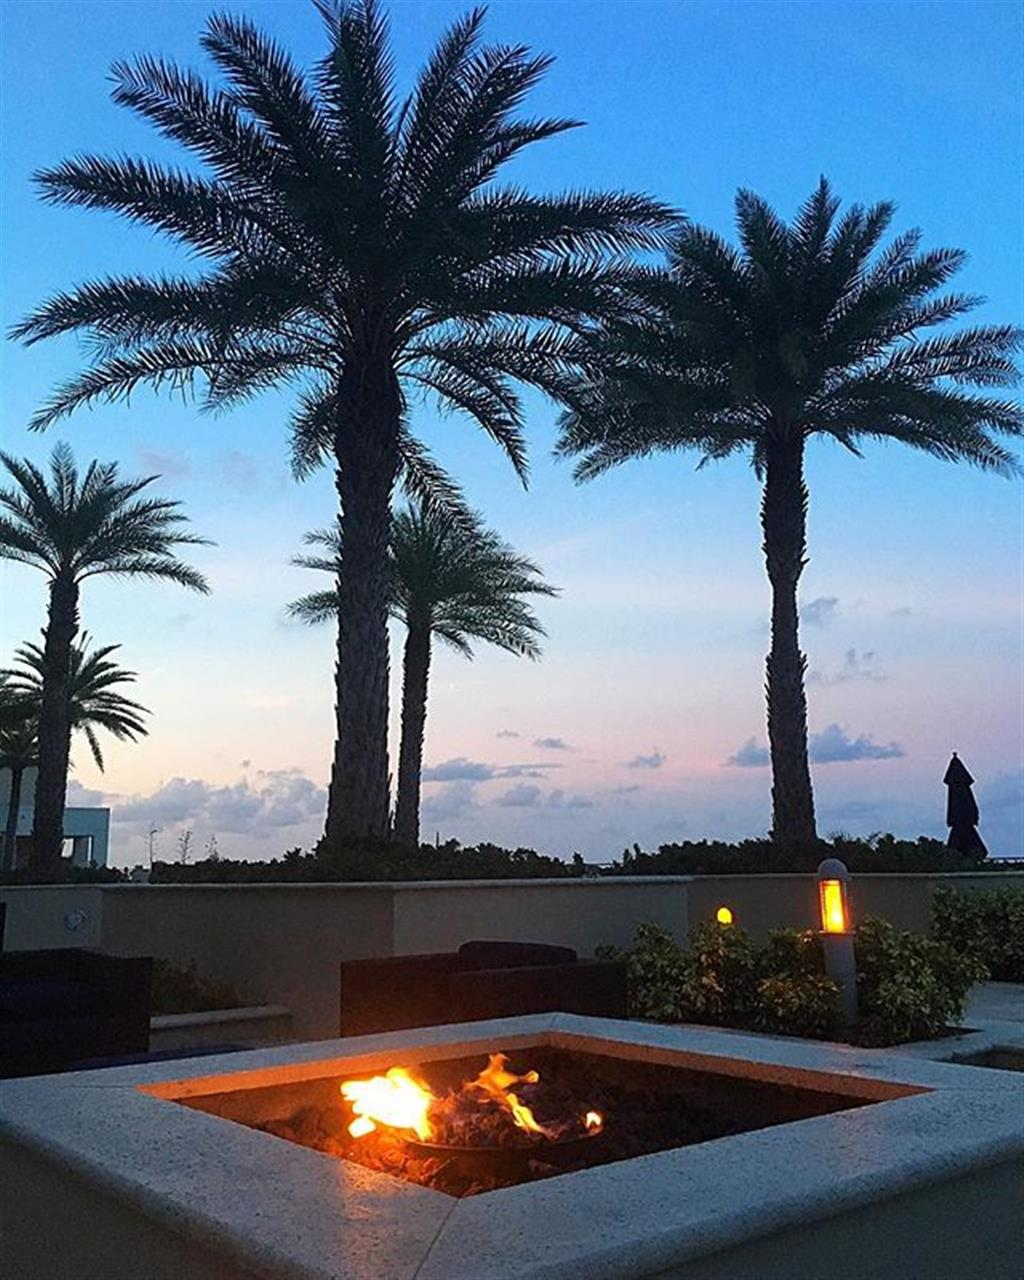 Welcome to Fort Lauderdale Beach and enjoy the view #sunset #palmtrees #firepit #zulemesarealtor #leadingrelocal